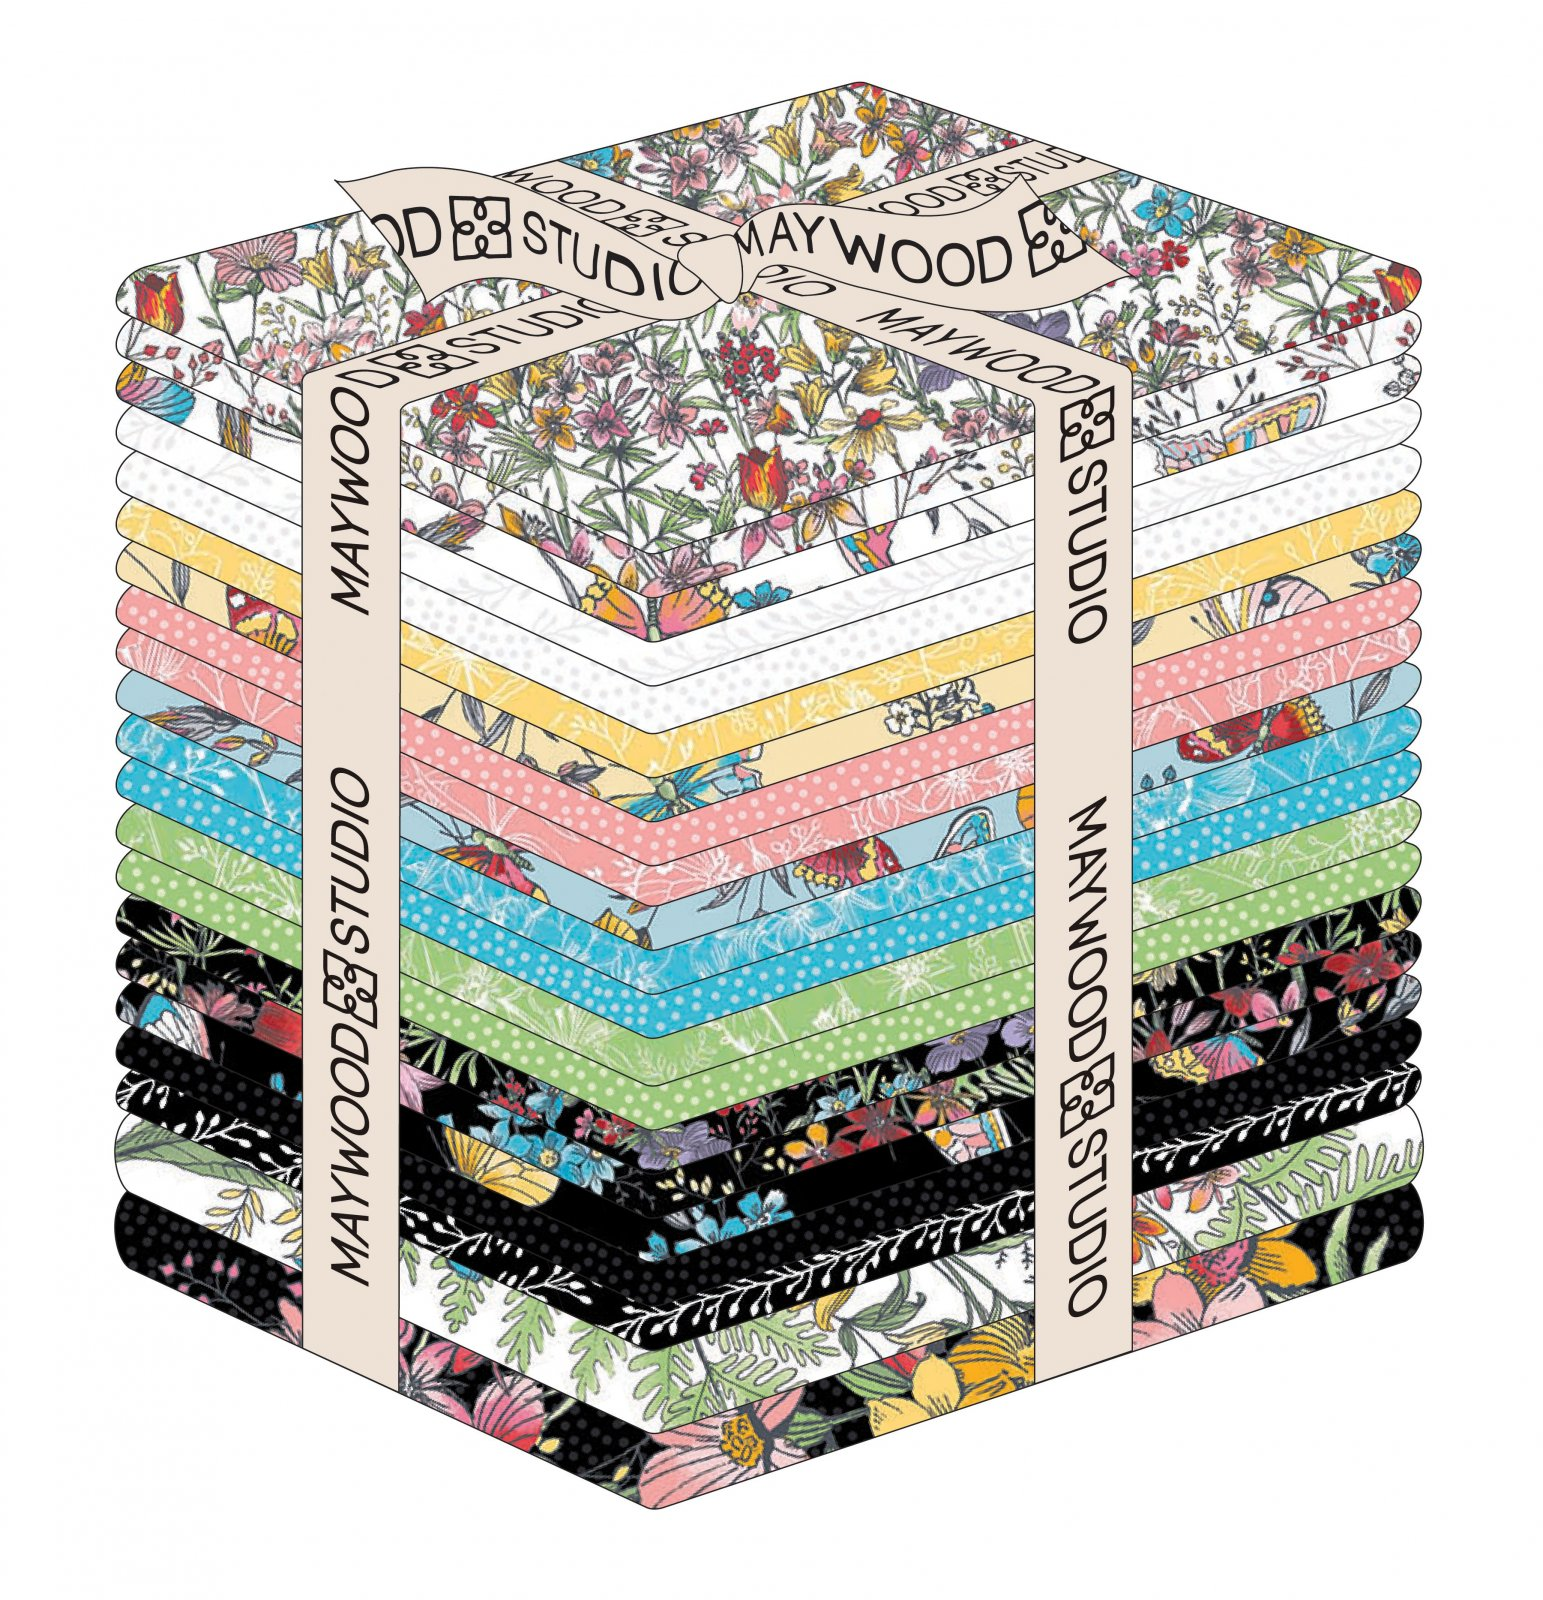 EESC-FQMASMEE - MEADOW EDGE - FAT QUARTER BUNDLES (20PC + 2PNL) - ARRIVING IN MAY 2021